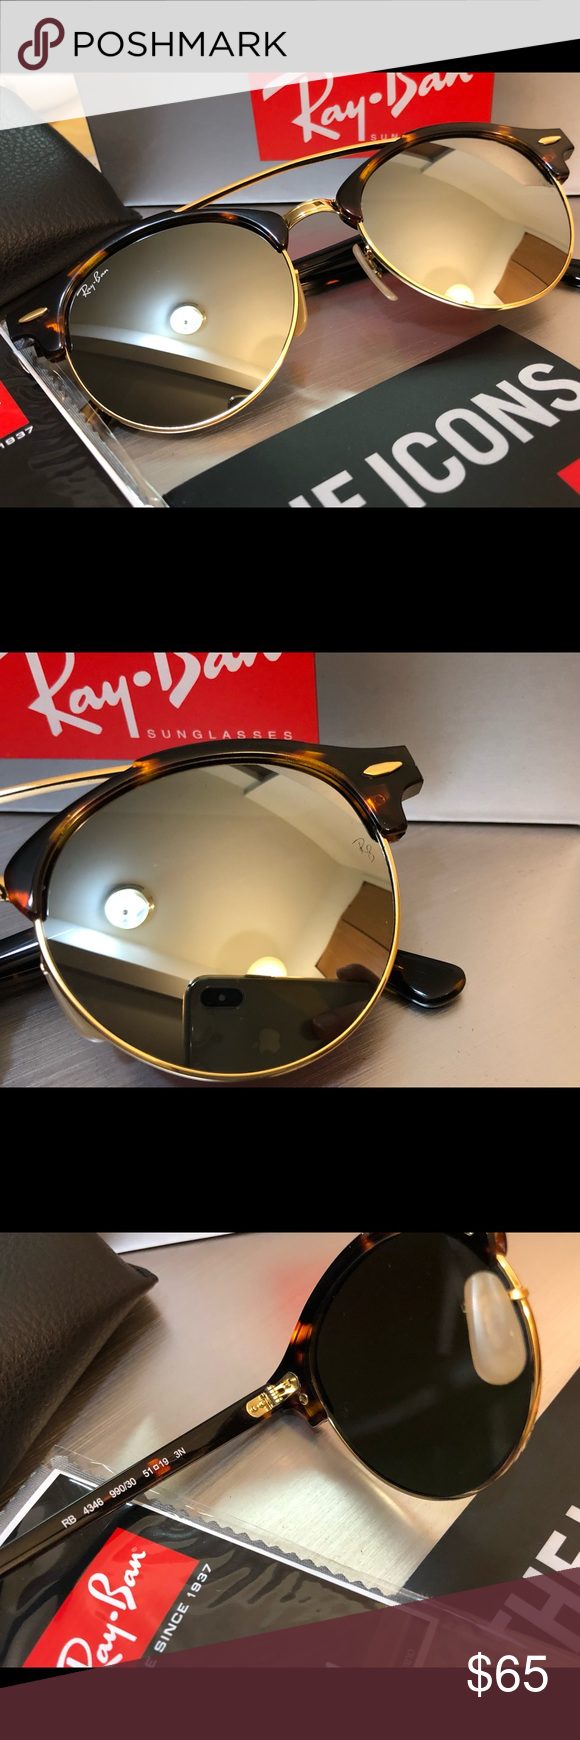 ab89d661bf New Ray-Ban CLUBROUND DOUBLE BRIDGE RB4346 New Ray-Ban CLUBROUND DOUBLE  BRIDGE RB4346